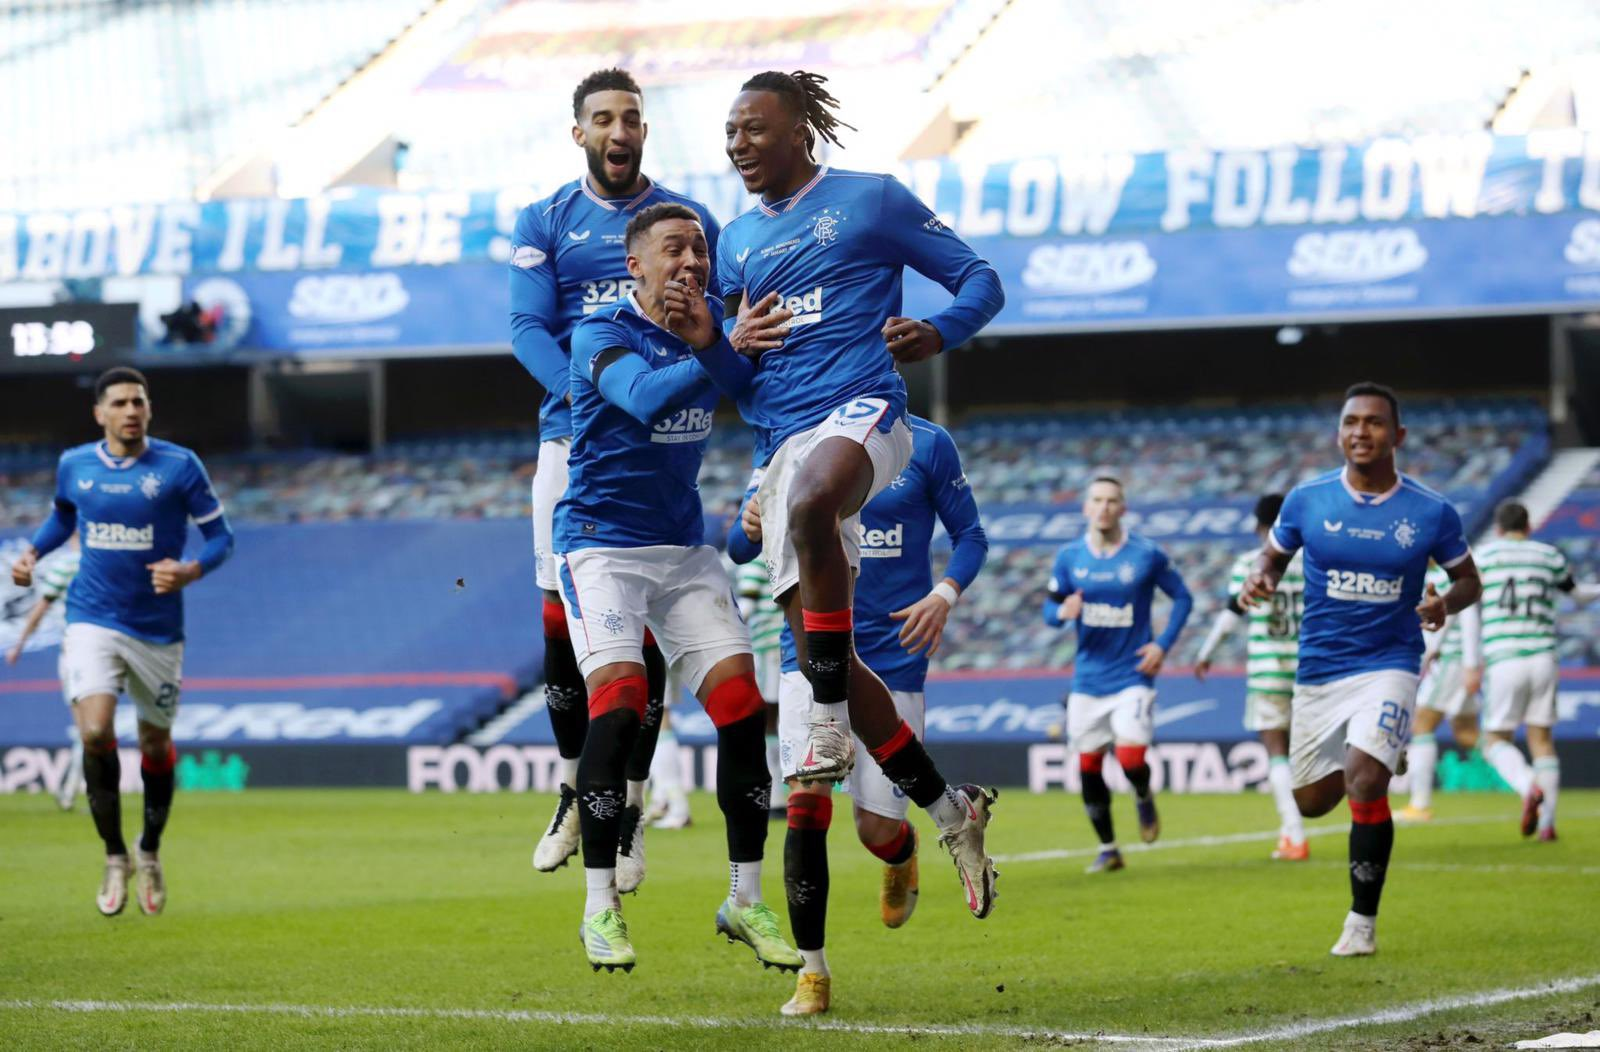 Aribo, Balogun star as Rangers stretched unbeaten records in the SPL